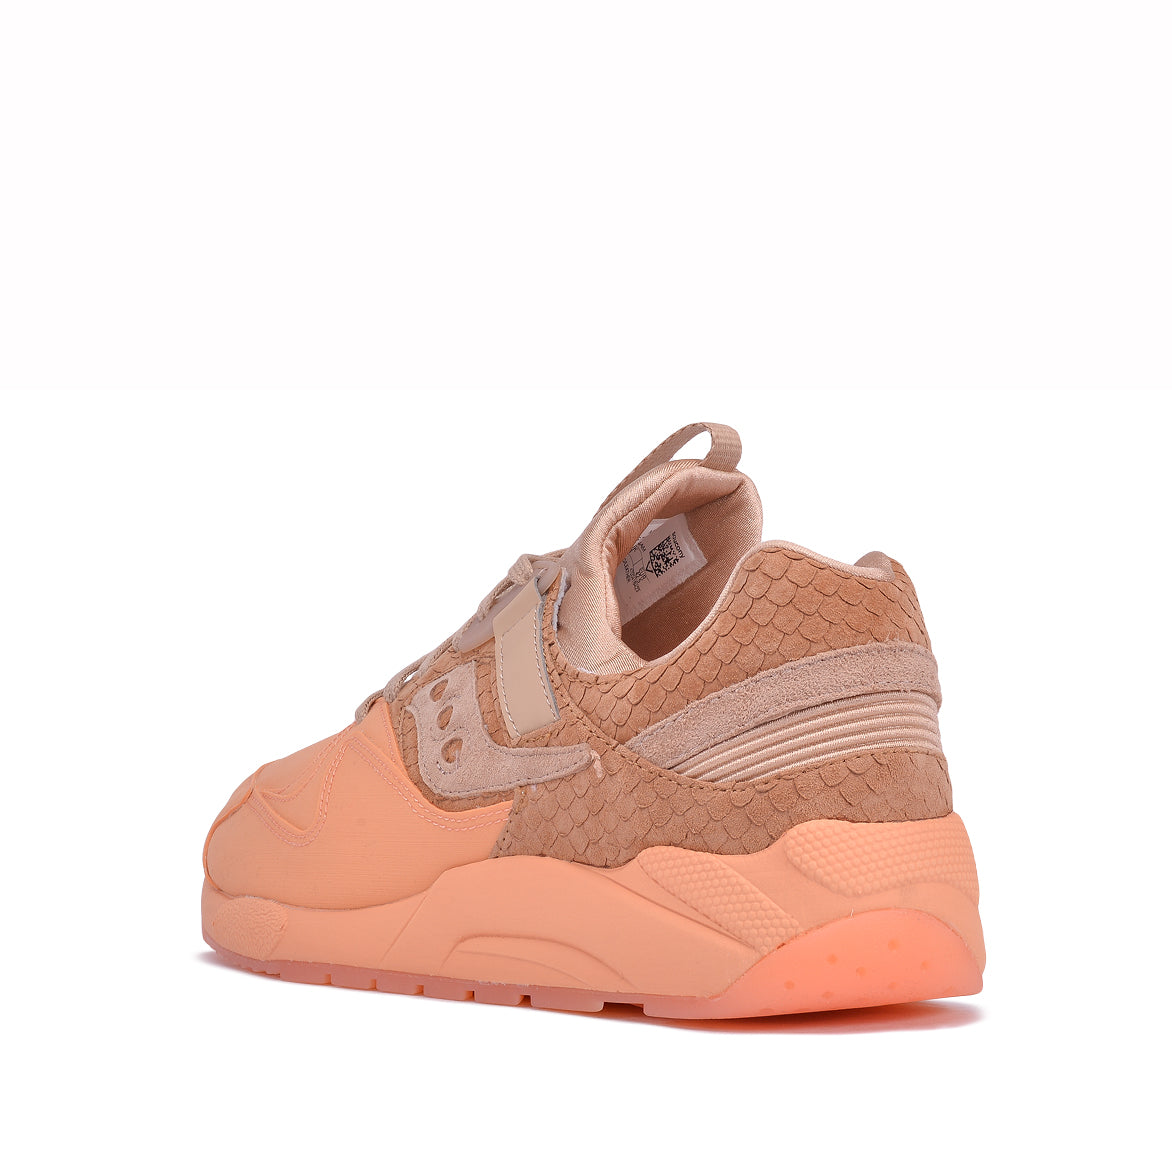 "GRID 9000 HT ""SHERBET PACK"" - TAN / ORANGE"